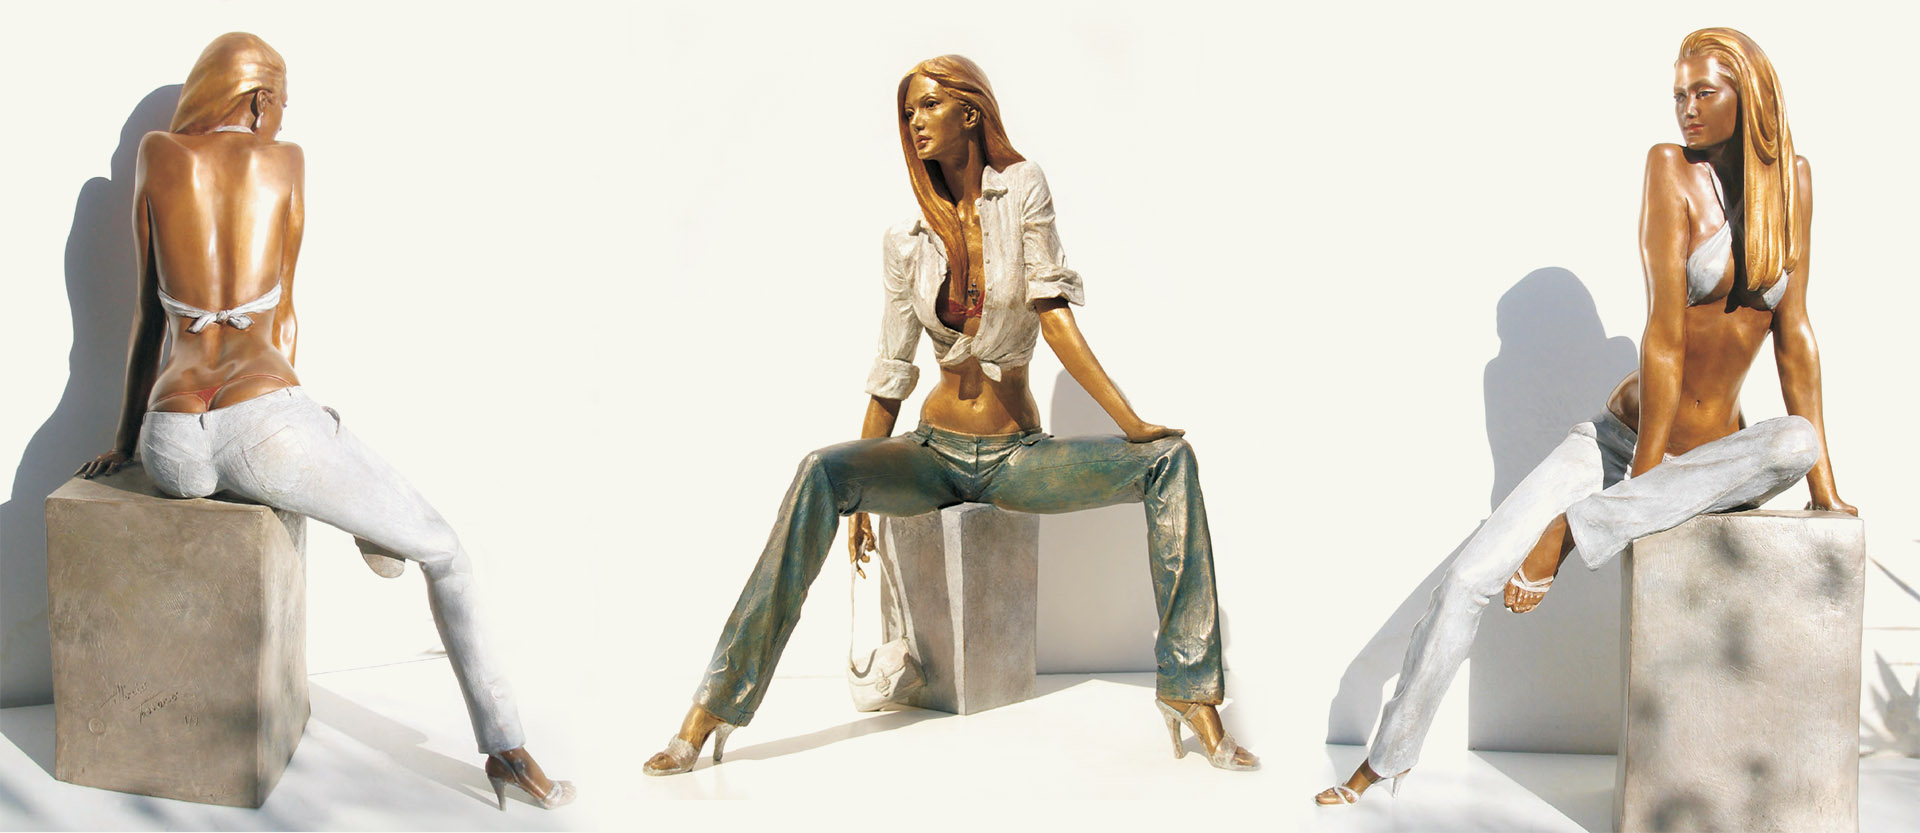 statues-of-women-sculptures-woman-cover-01